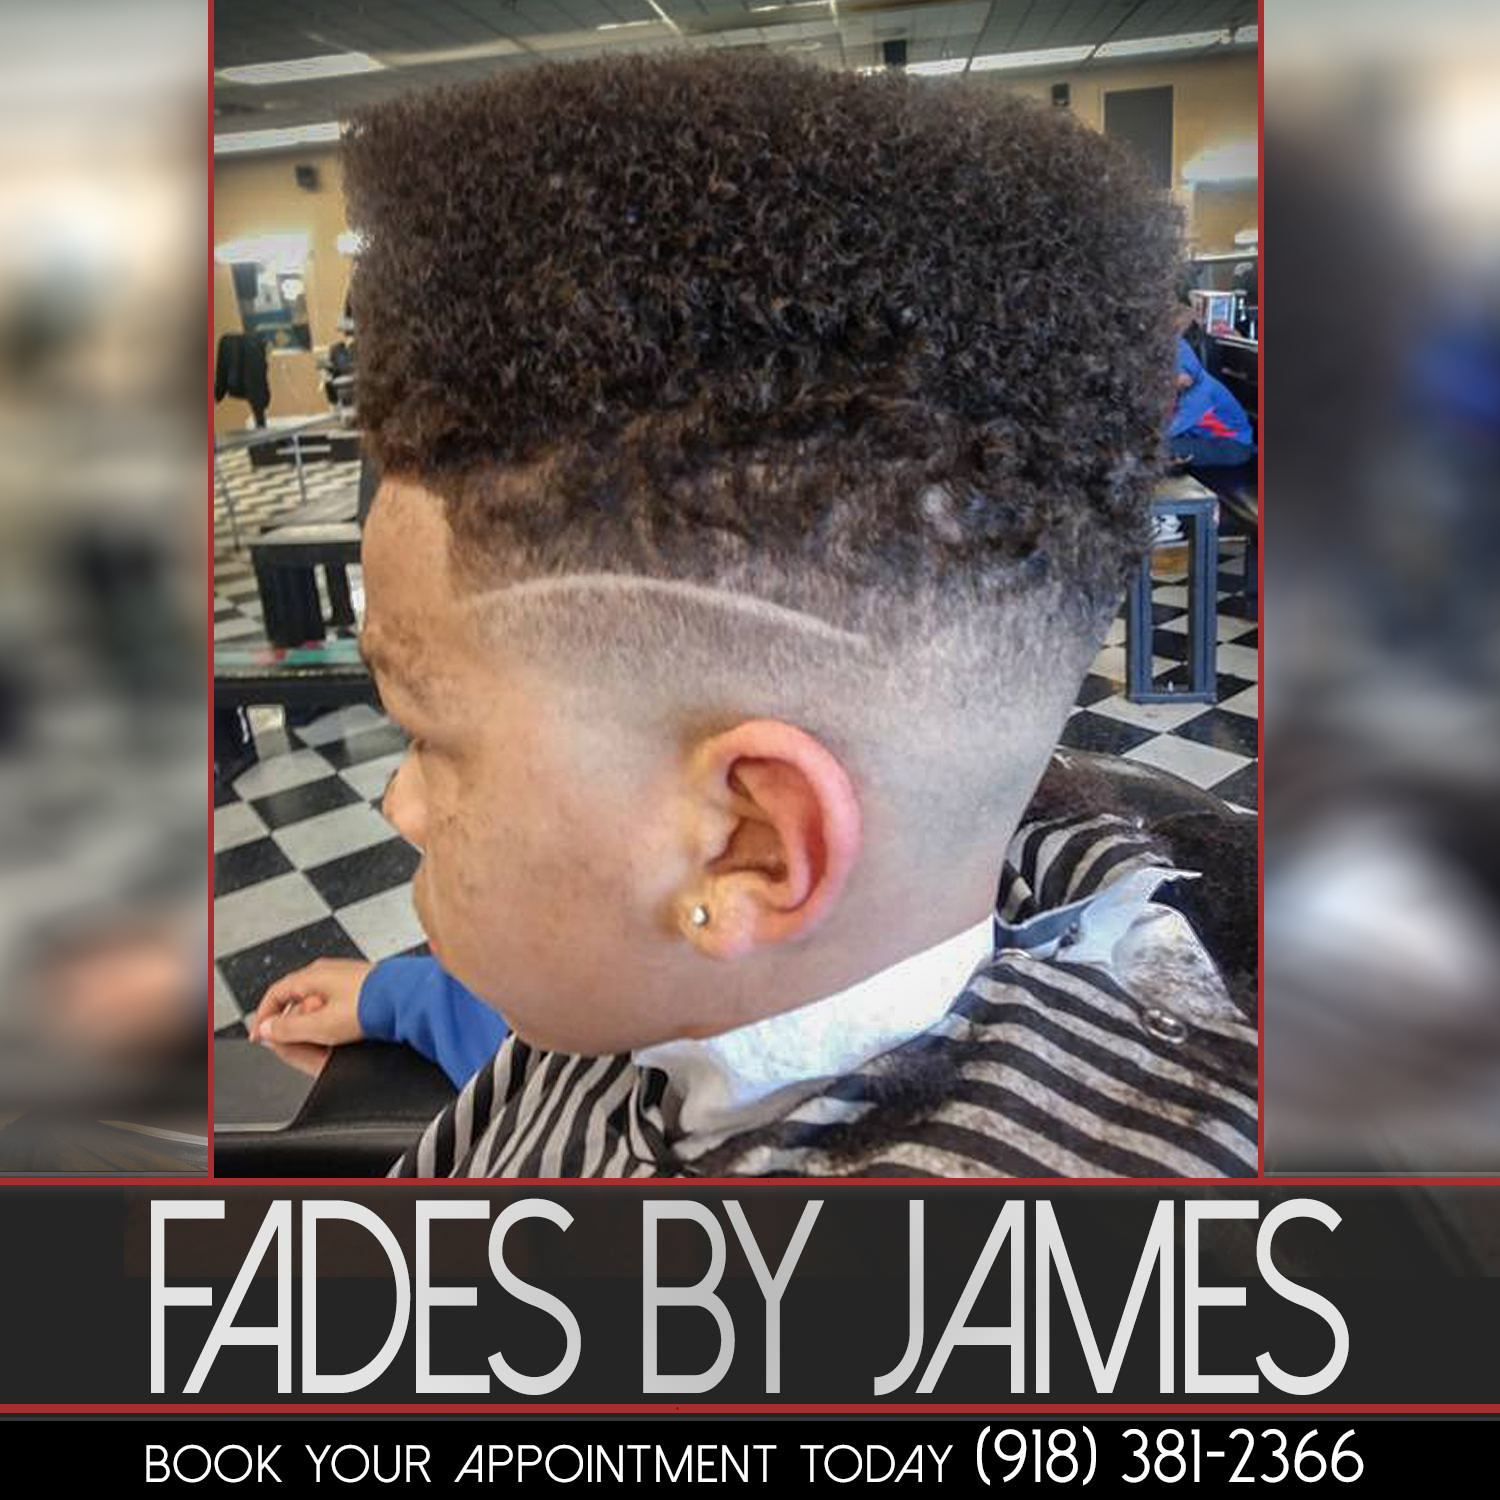 fadesby james 21766982_10155580203820903